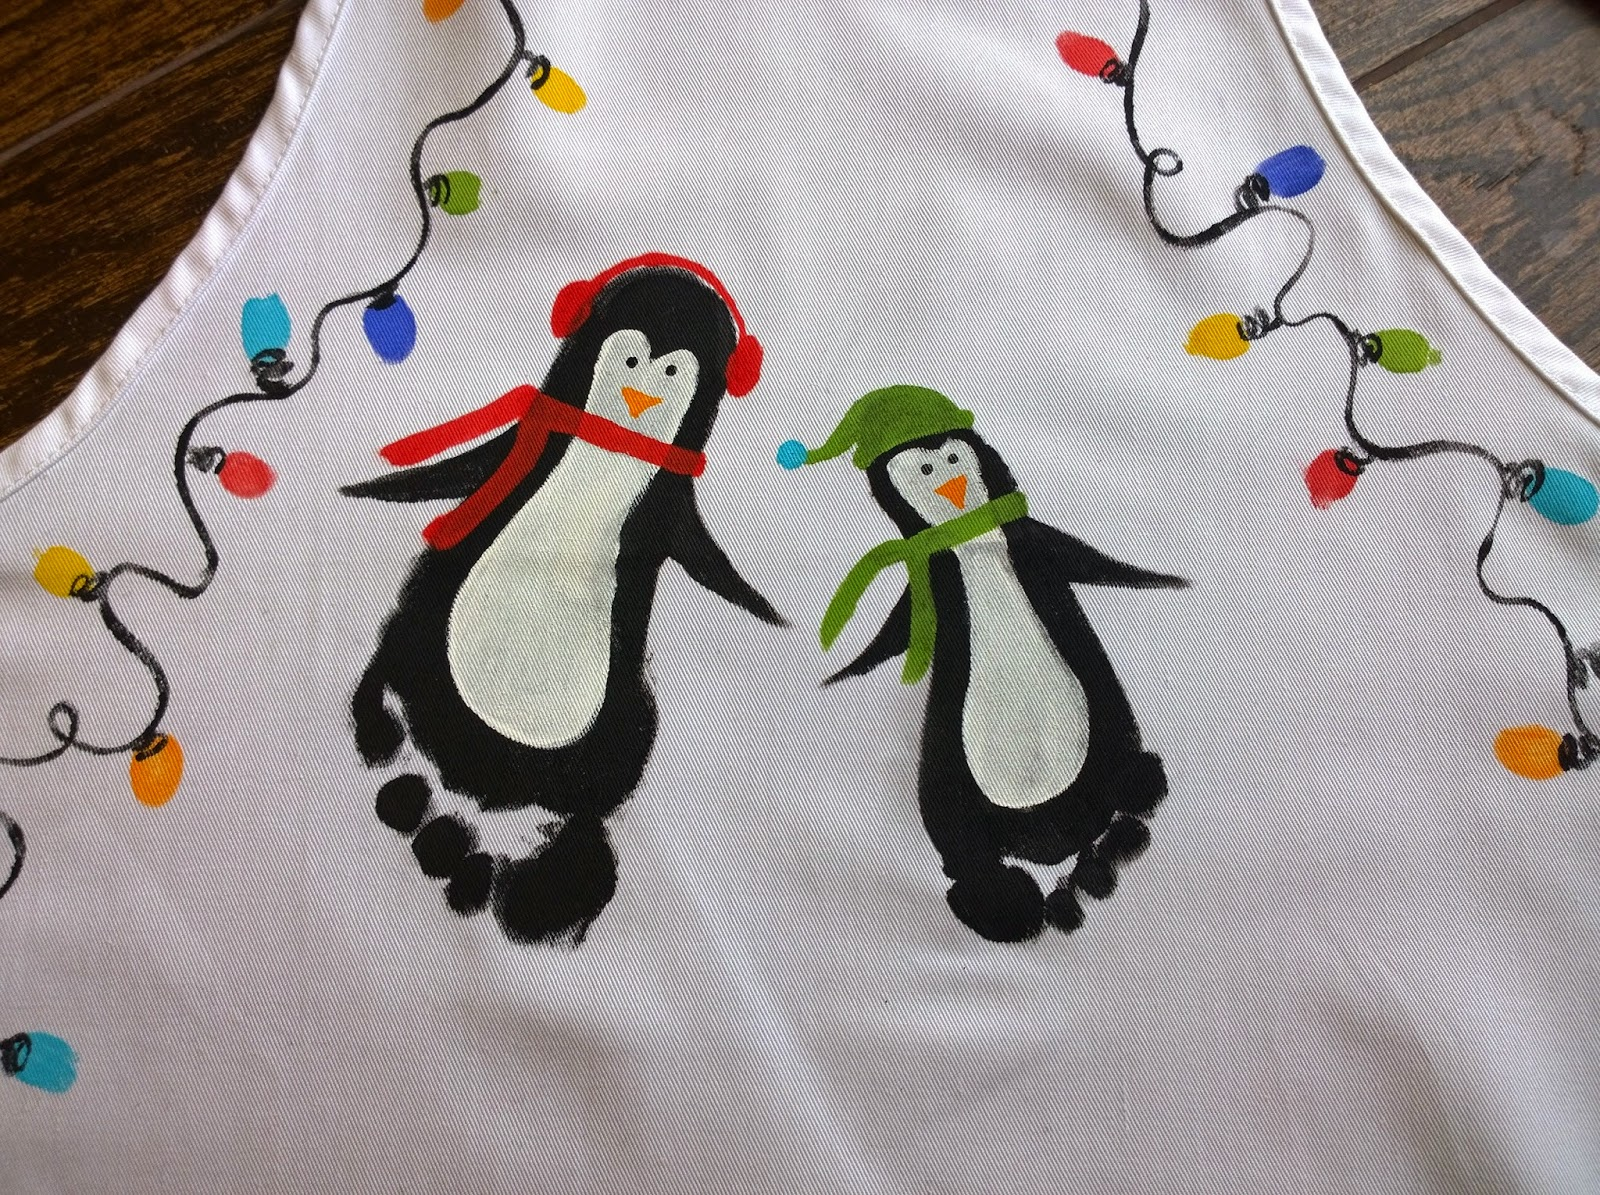 White apron hobby lobby - I Picked Up A Couple Of White Aprons From Hobby Lobby To Decorate All The Boys Had To Do Was Sit Still For A Black Footprint And I Painted The Details On